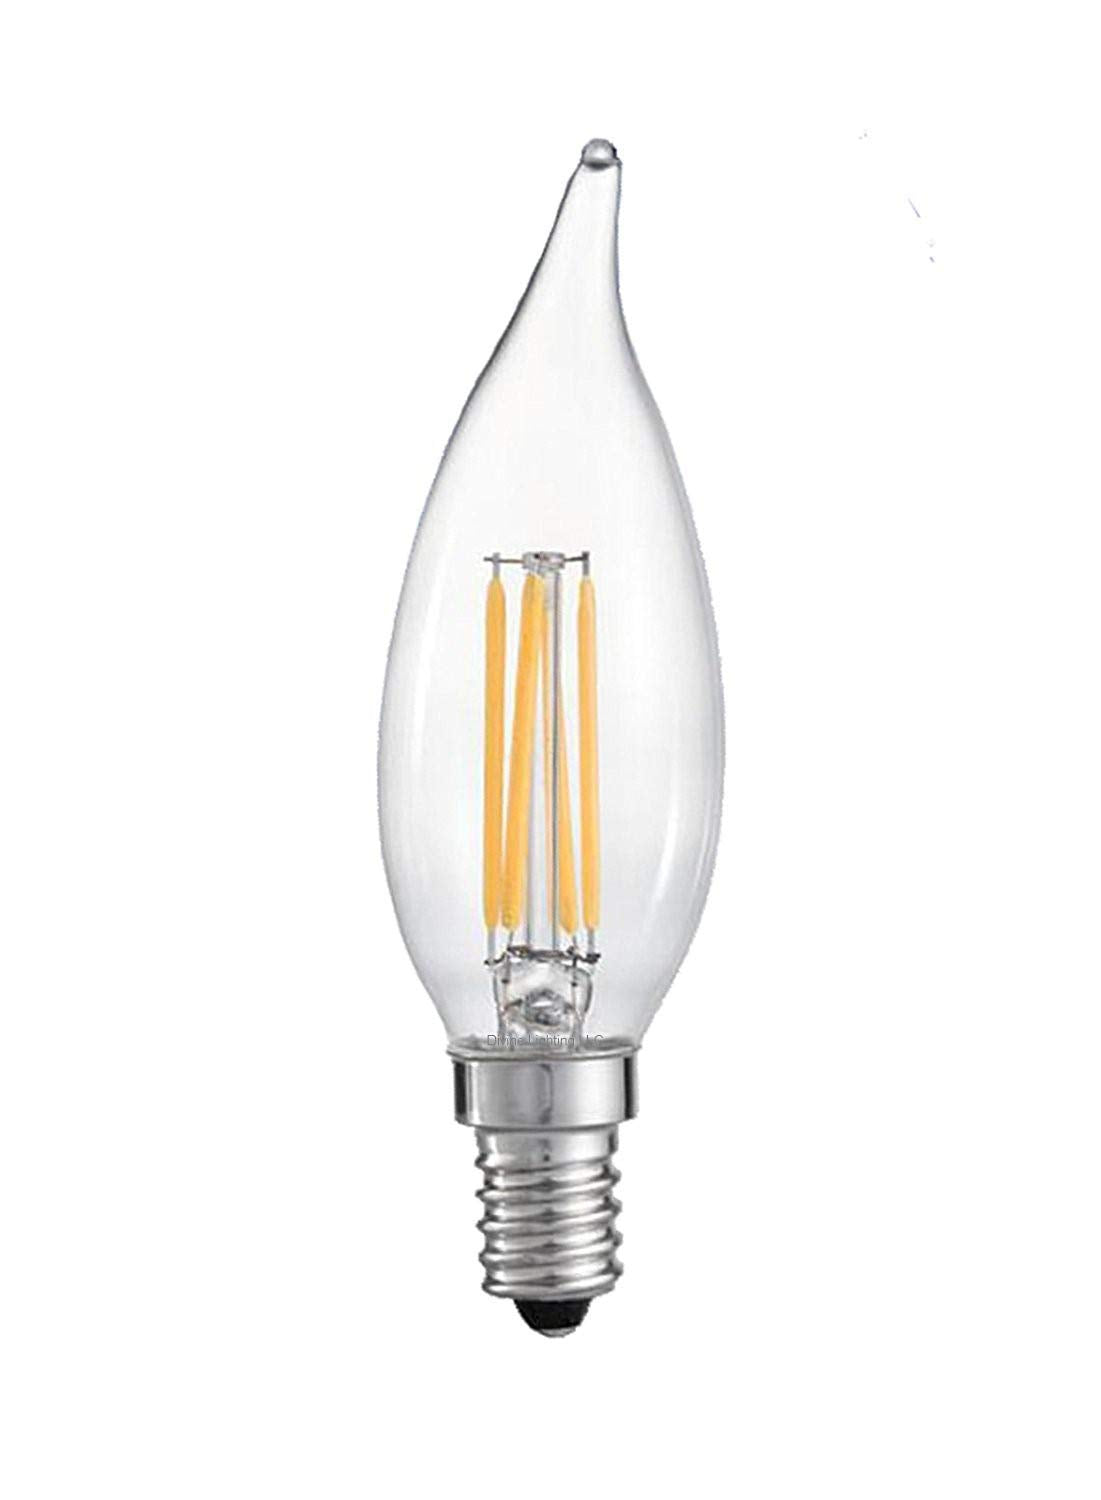 QPlus Edison Light Bulb B10 Twist Candelabra (4 Pack)